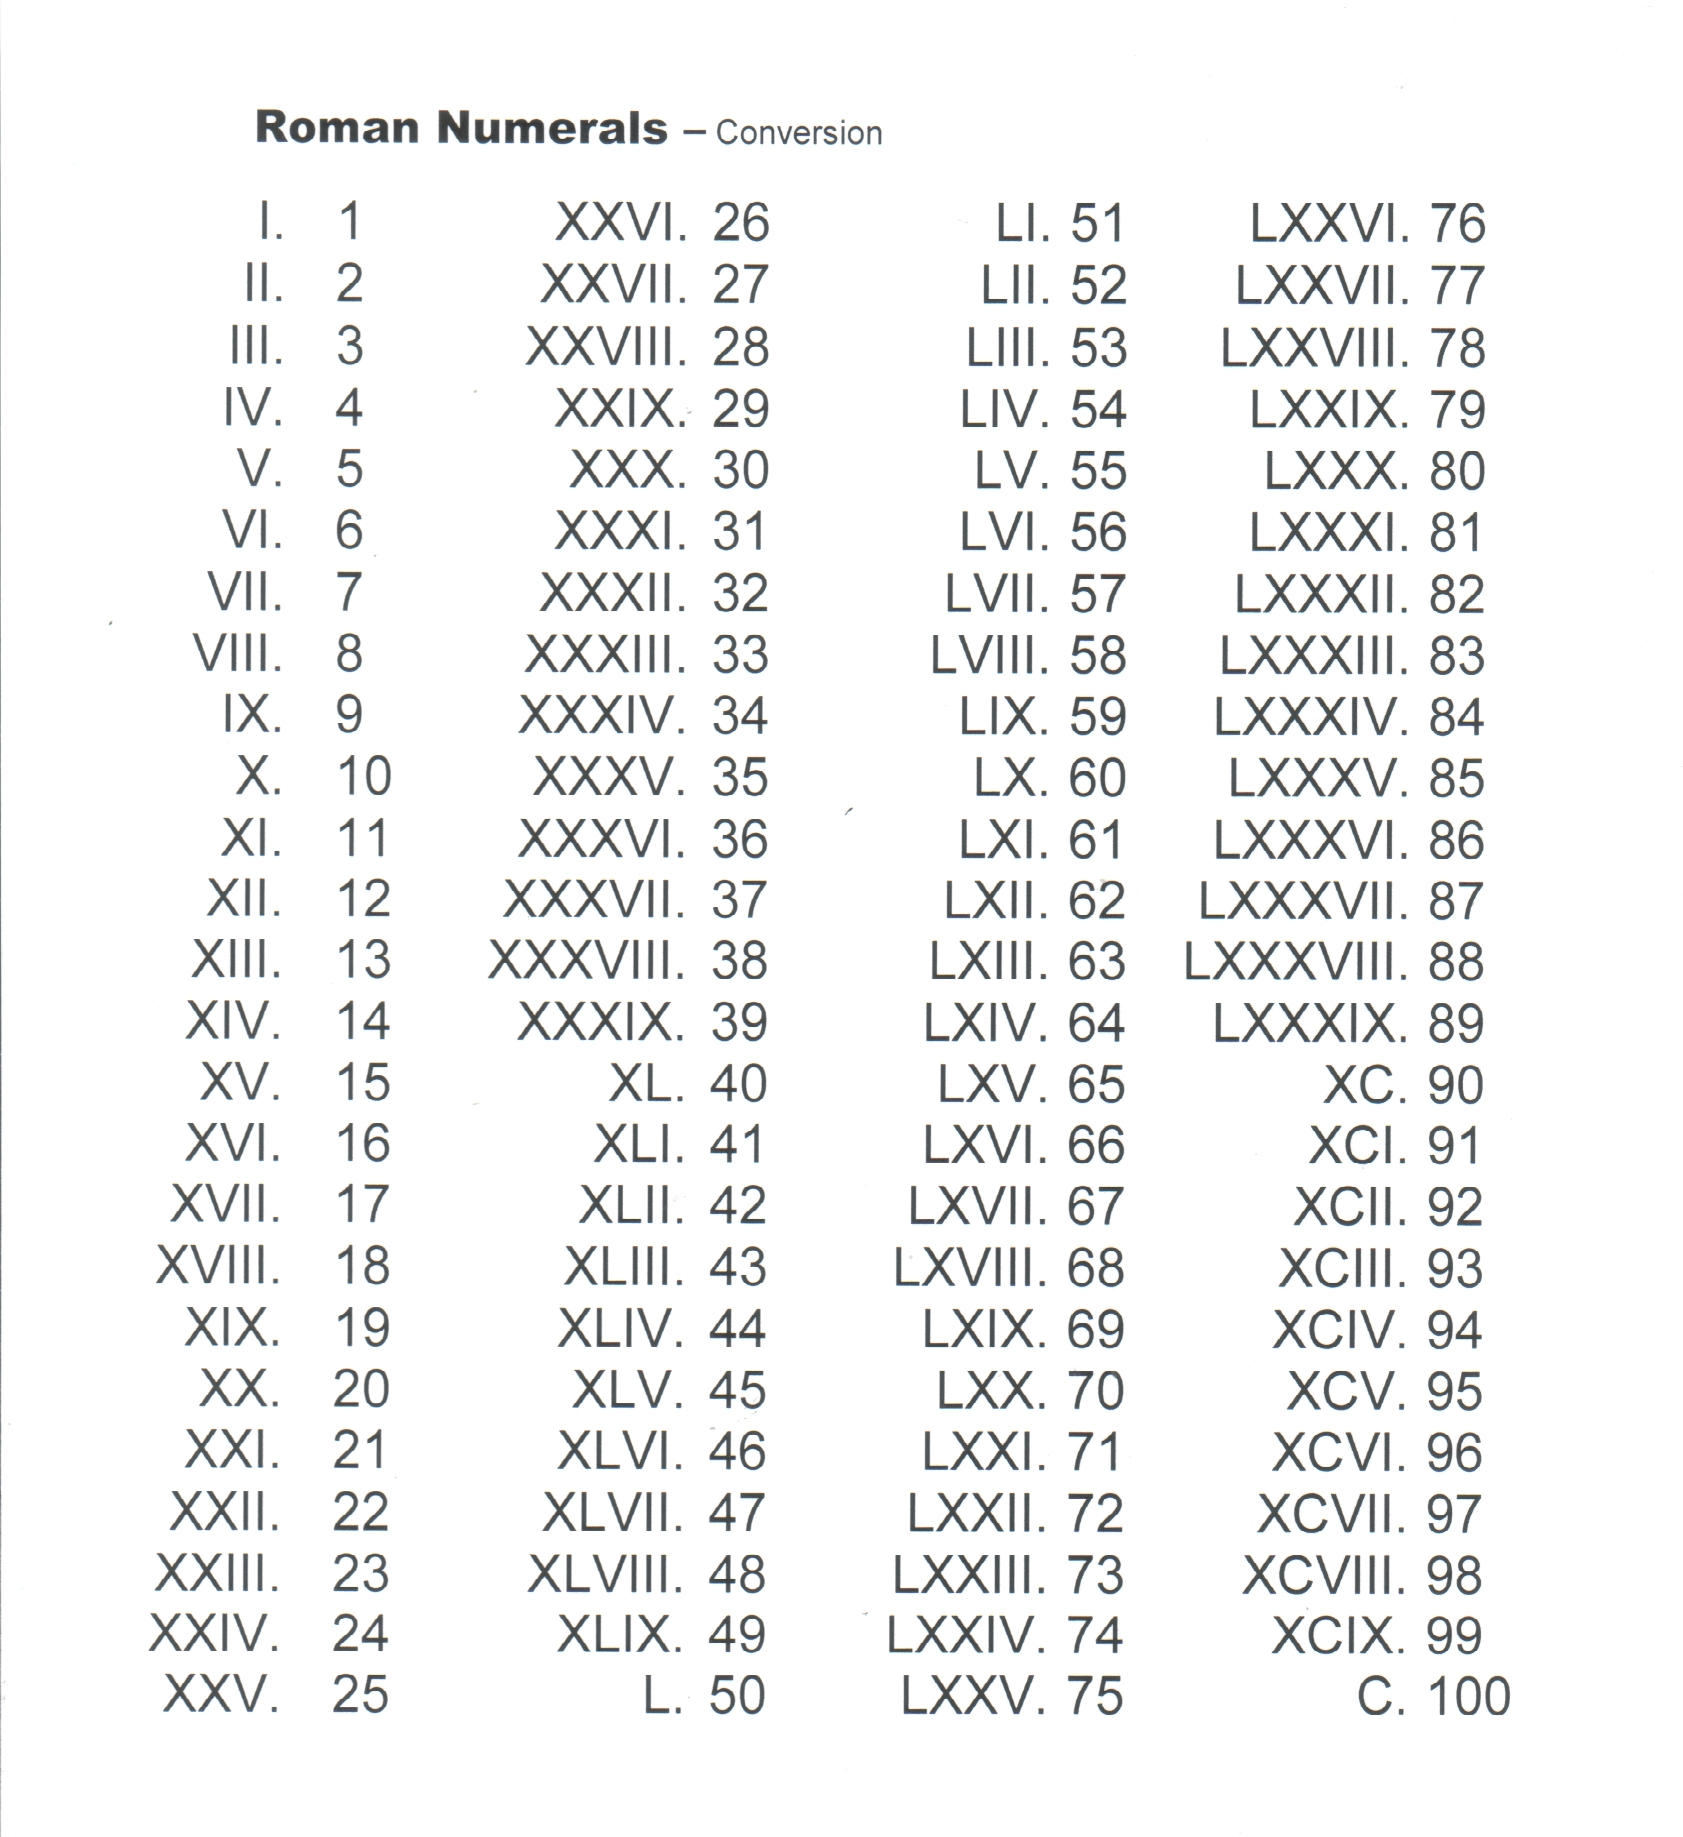 how to write 1950 in roman numerals